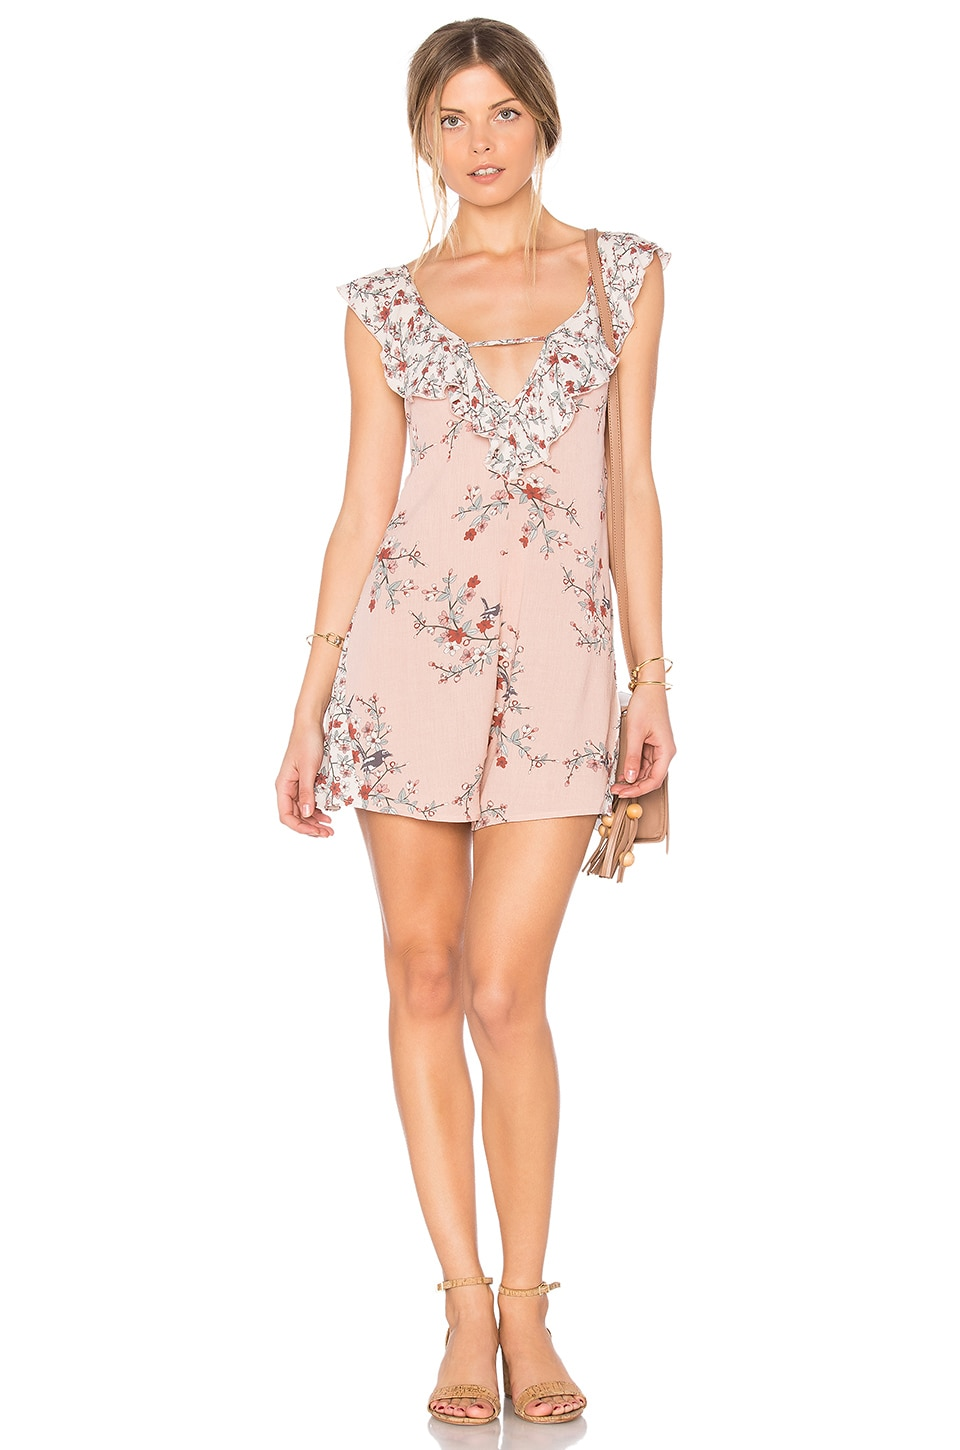 Sweet Sakura Playsuit